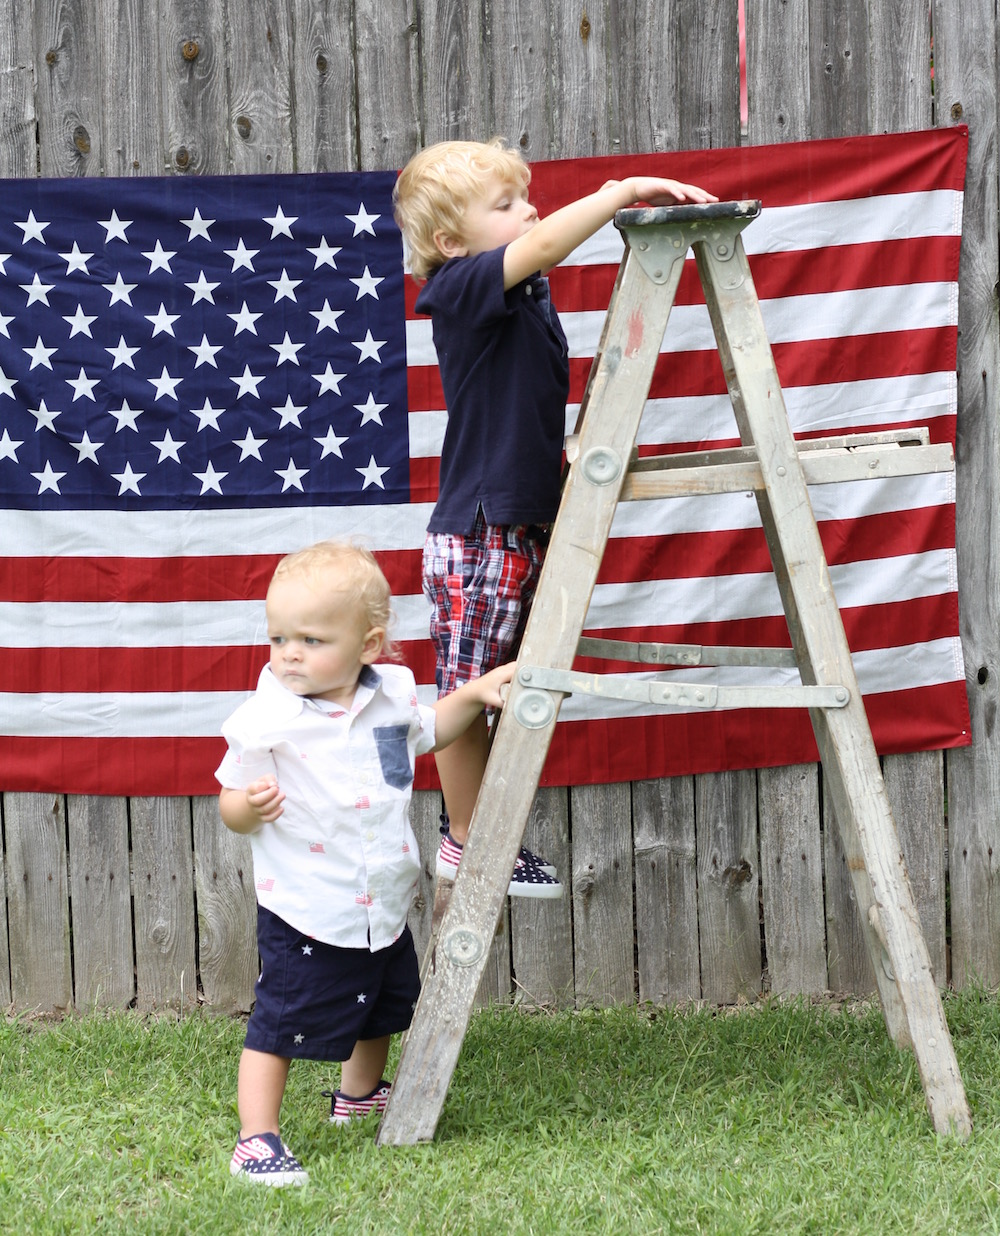 Star Spangled Kids 2017 [#StarSpangledKids] | Ellie And Addie